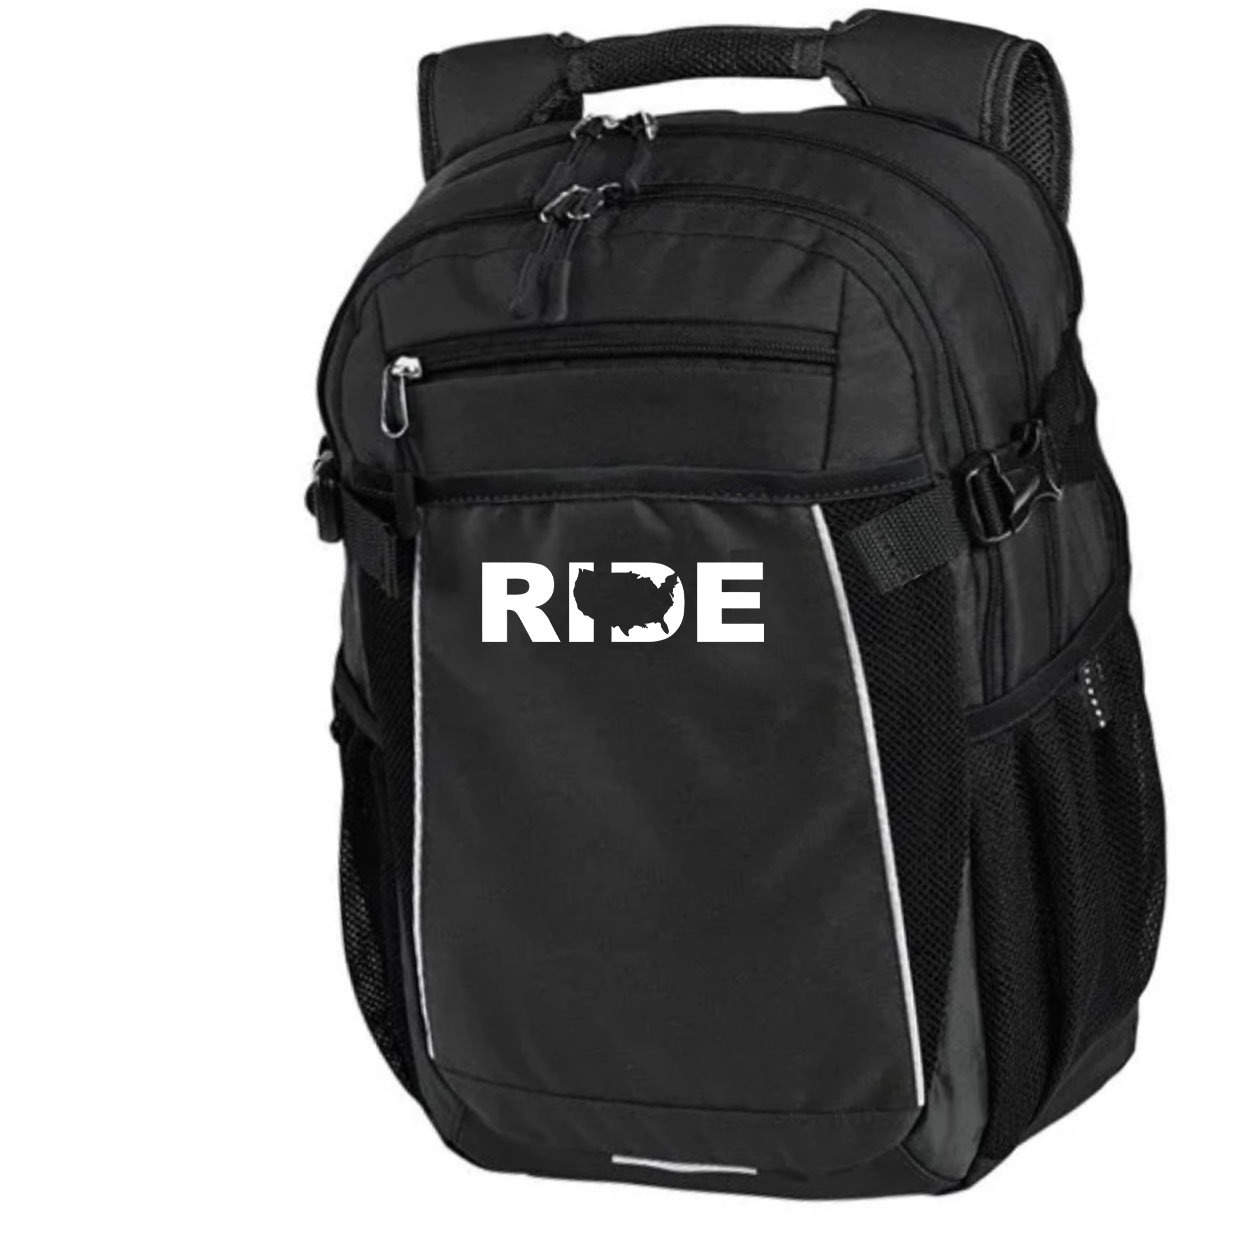 Ride United States Classic Pro Pioneer Backpack Black (White Logo)